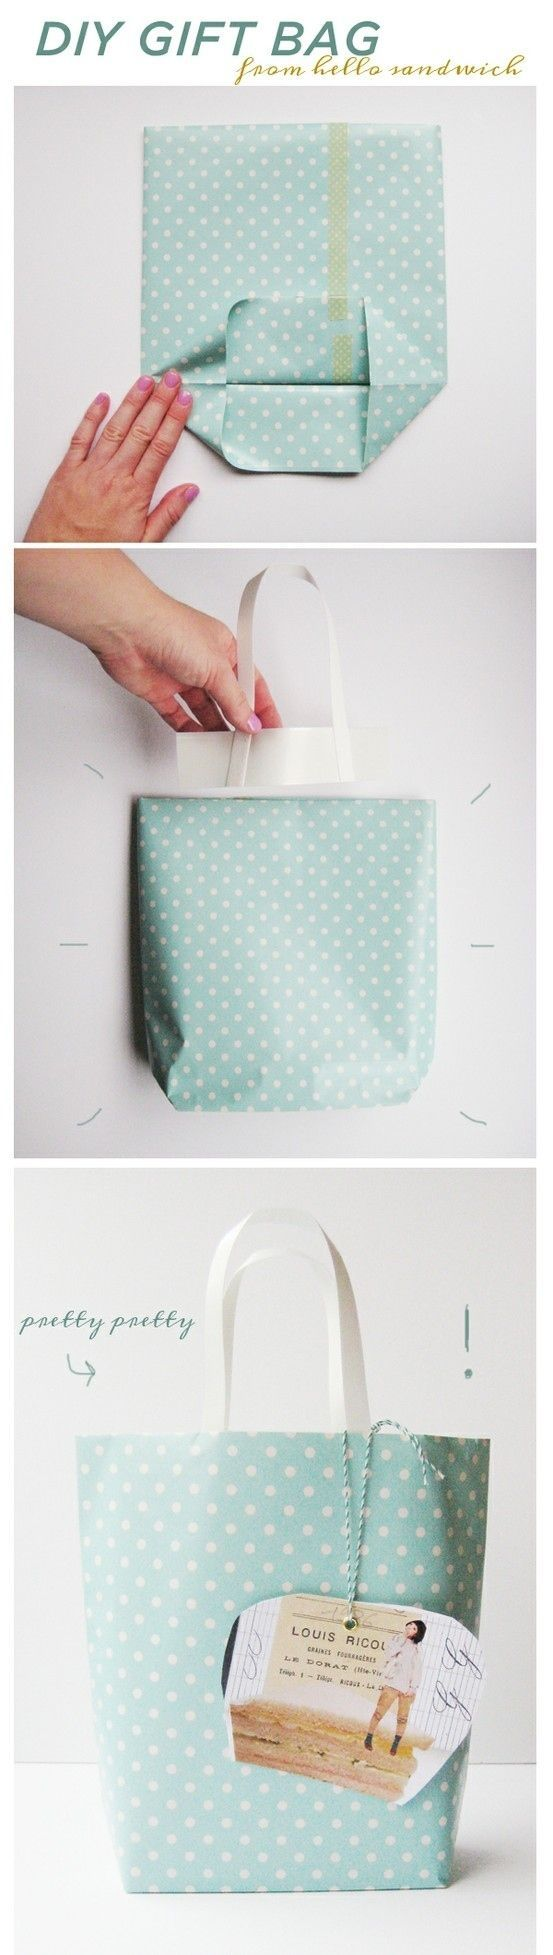 10 Ideas to Wrap Your Gifts